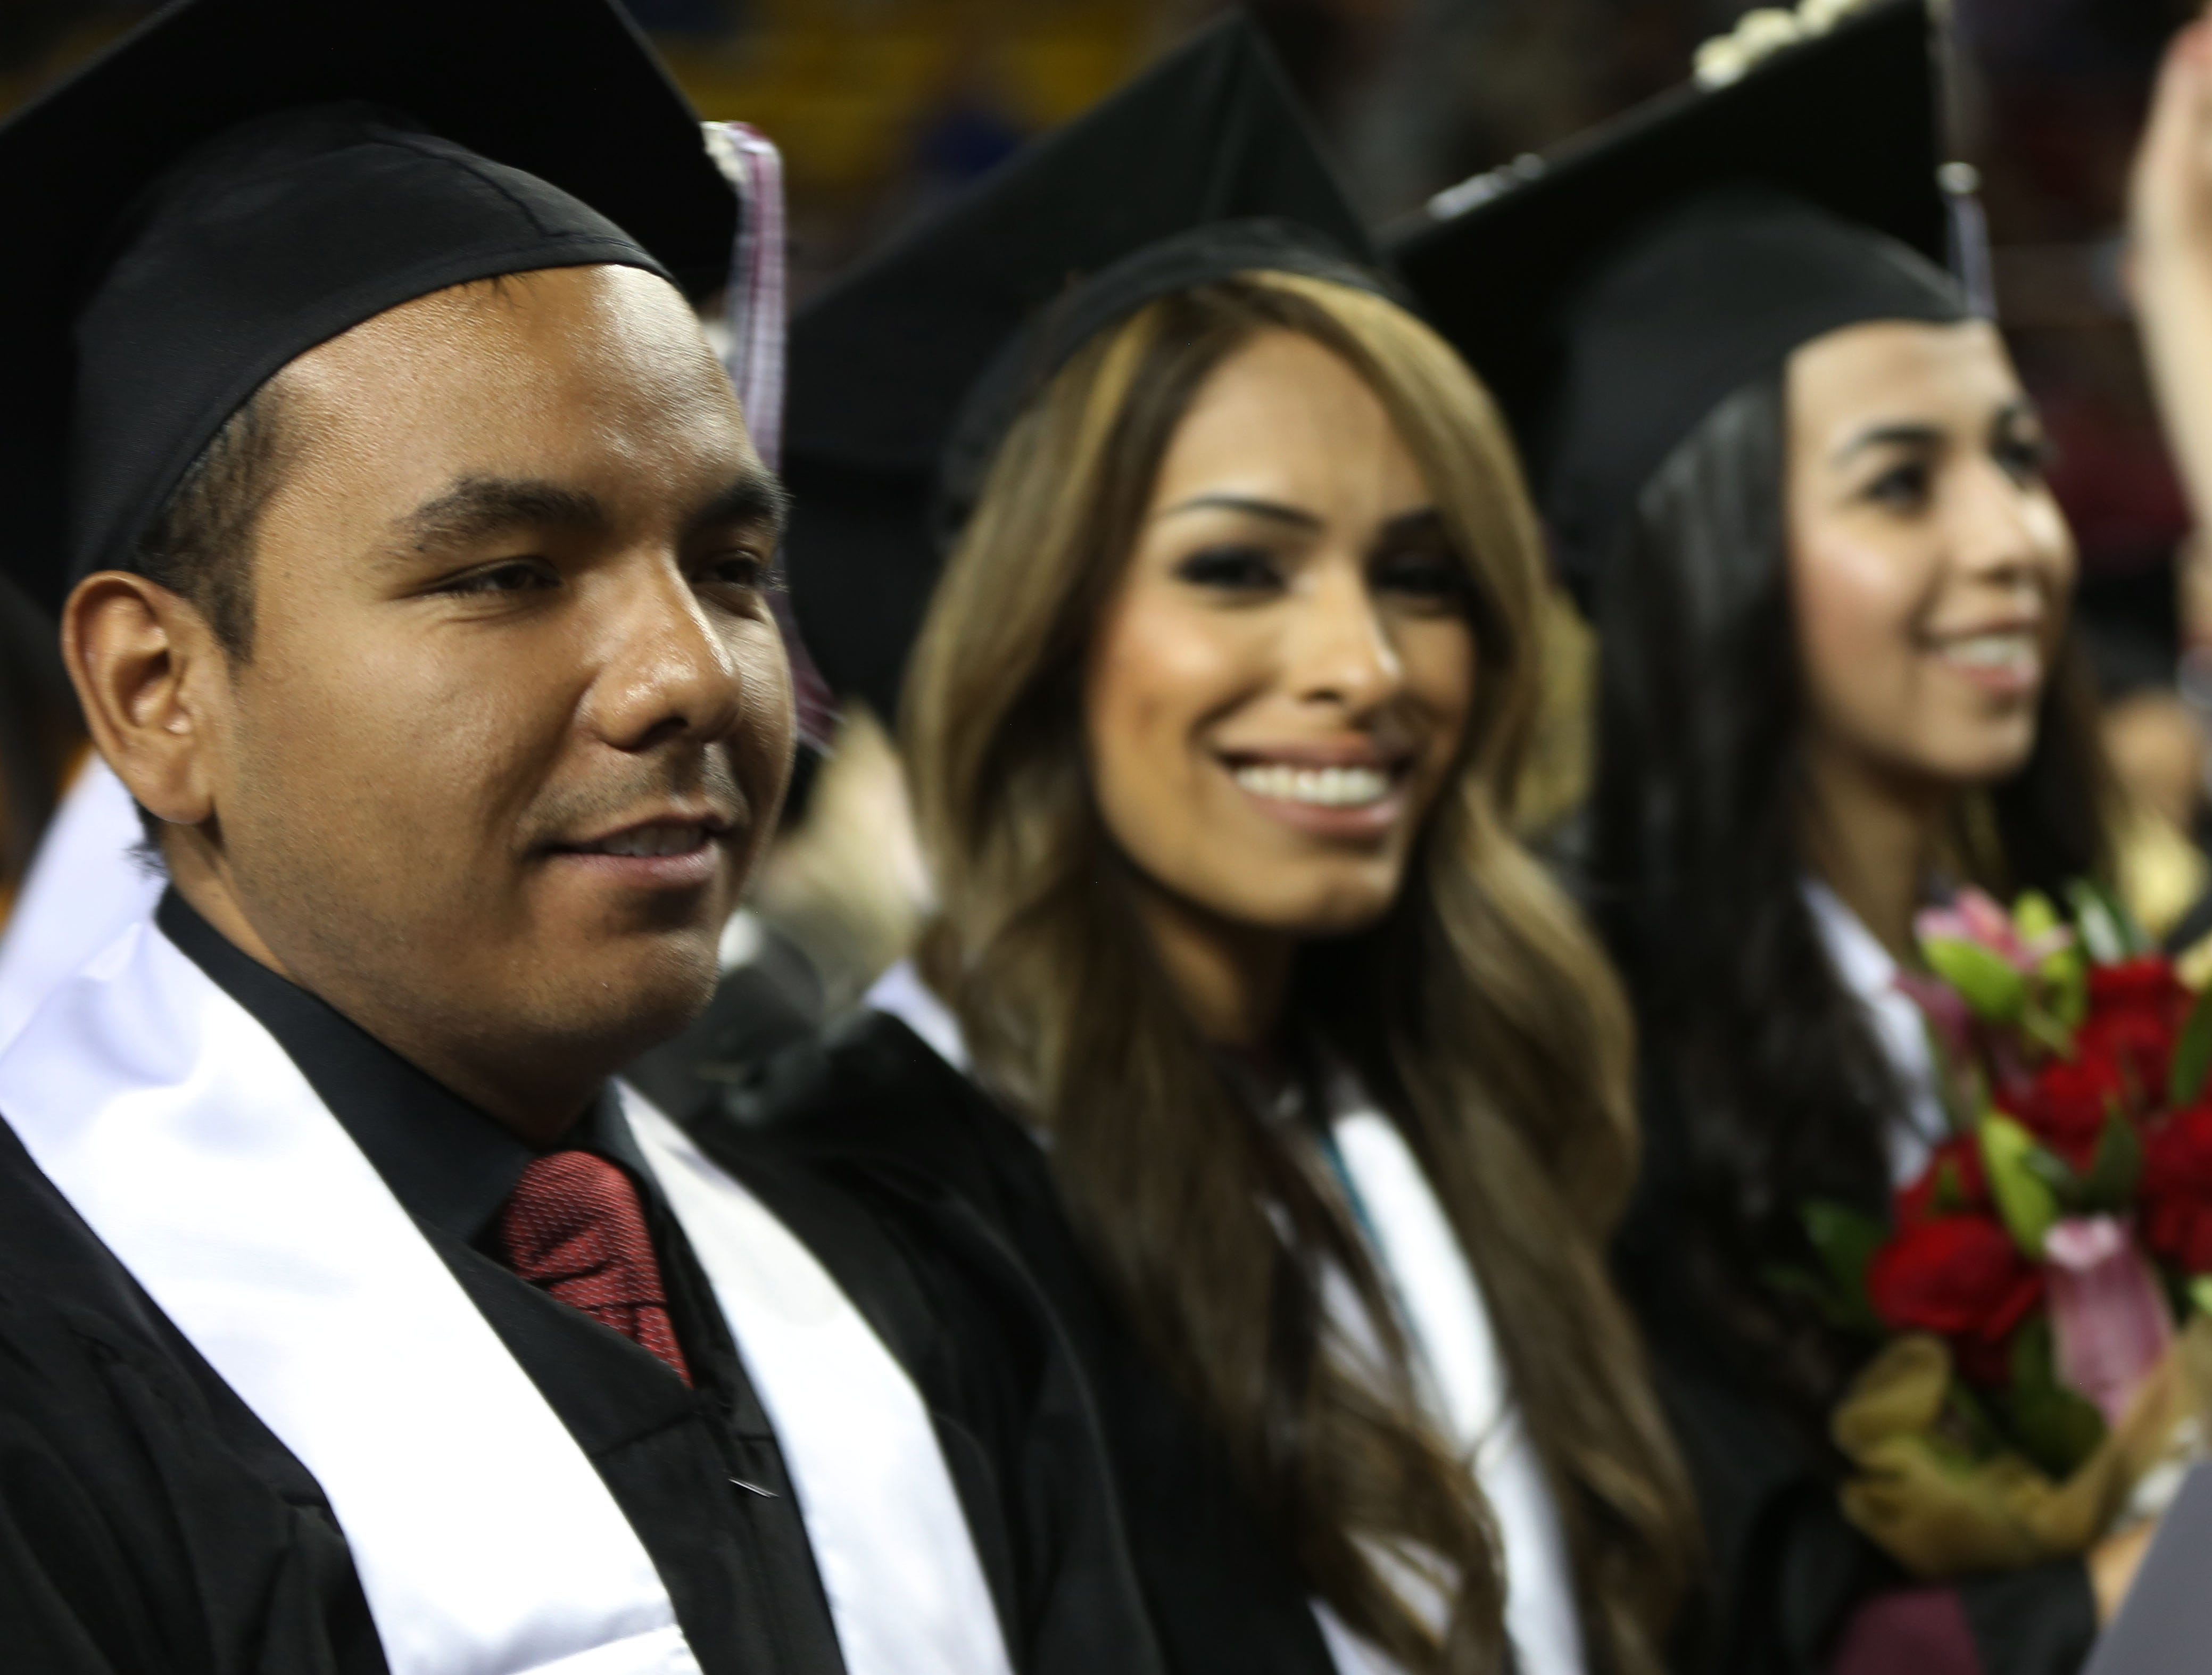 New Mexico State University graduates smile, after receiving their degrees during a graduation ceremony, Saturday May 11, 2019.